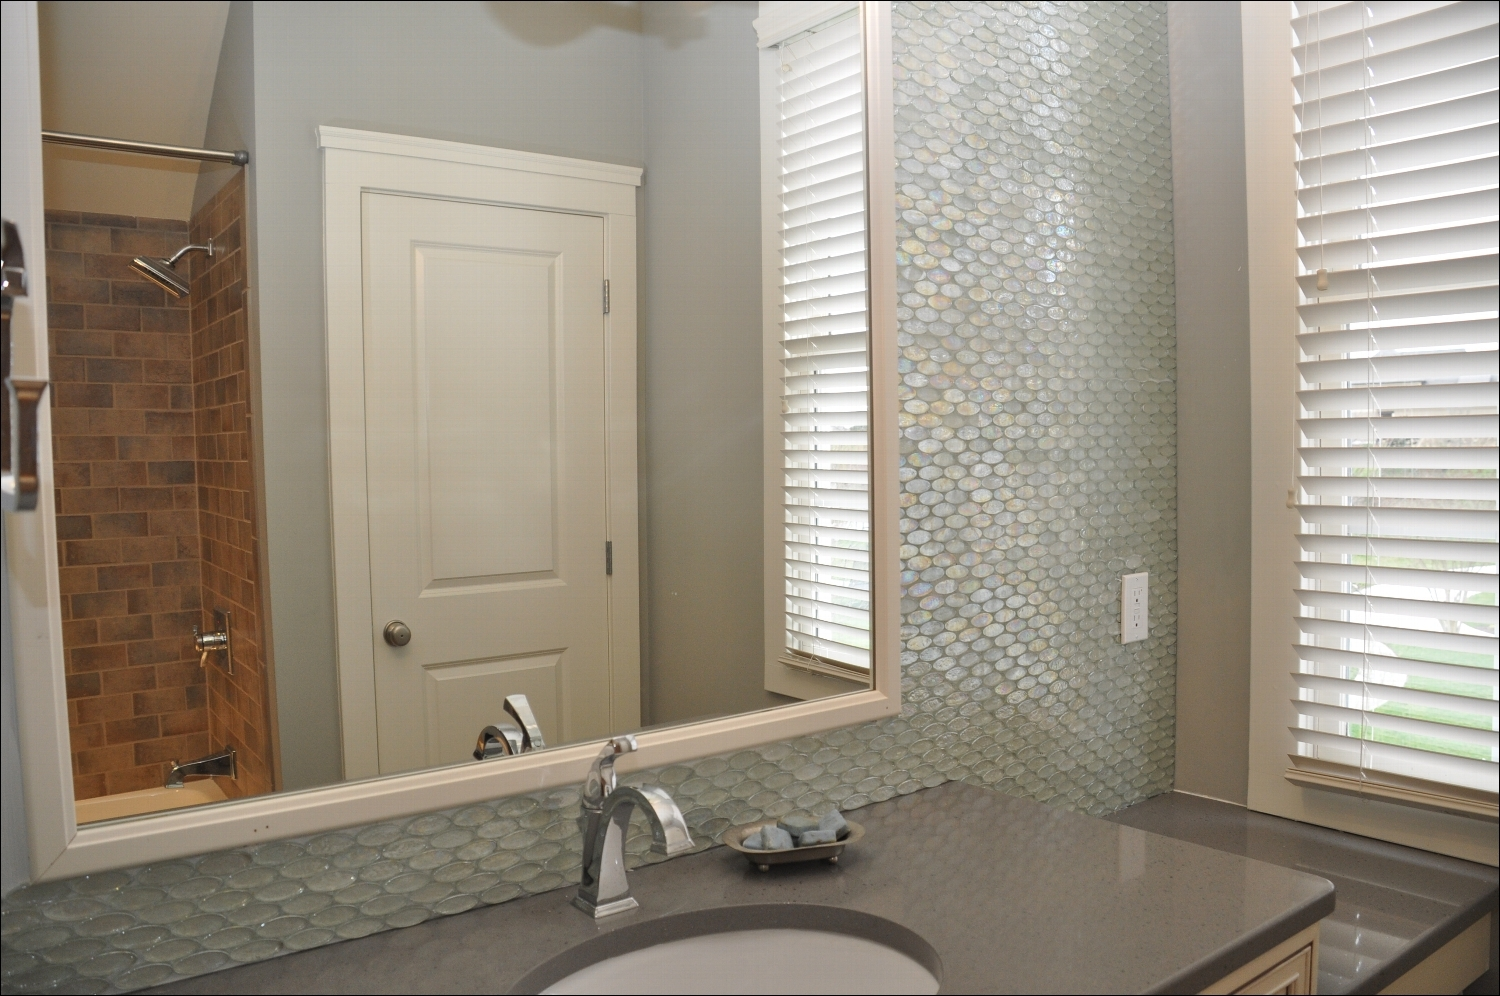 Bathroom Mirrors For Tiled Walls